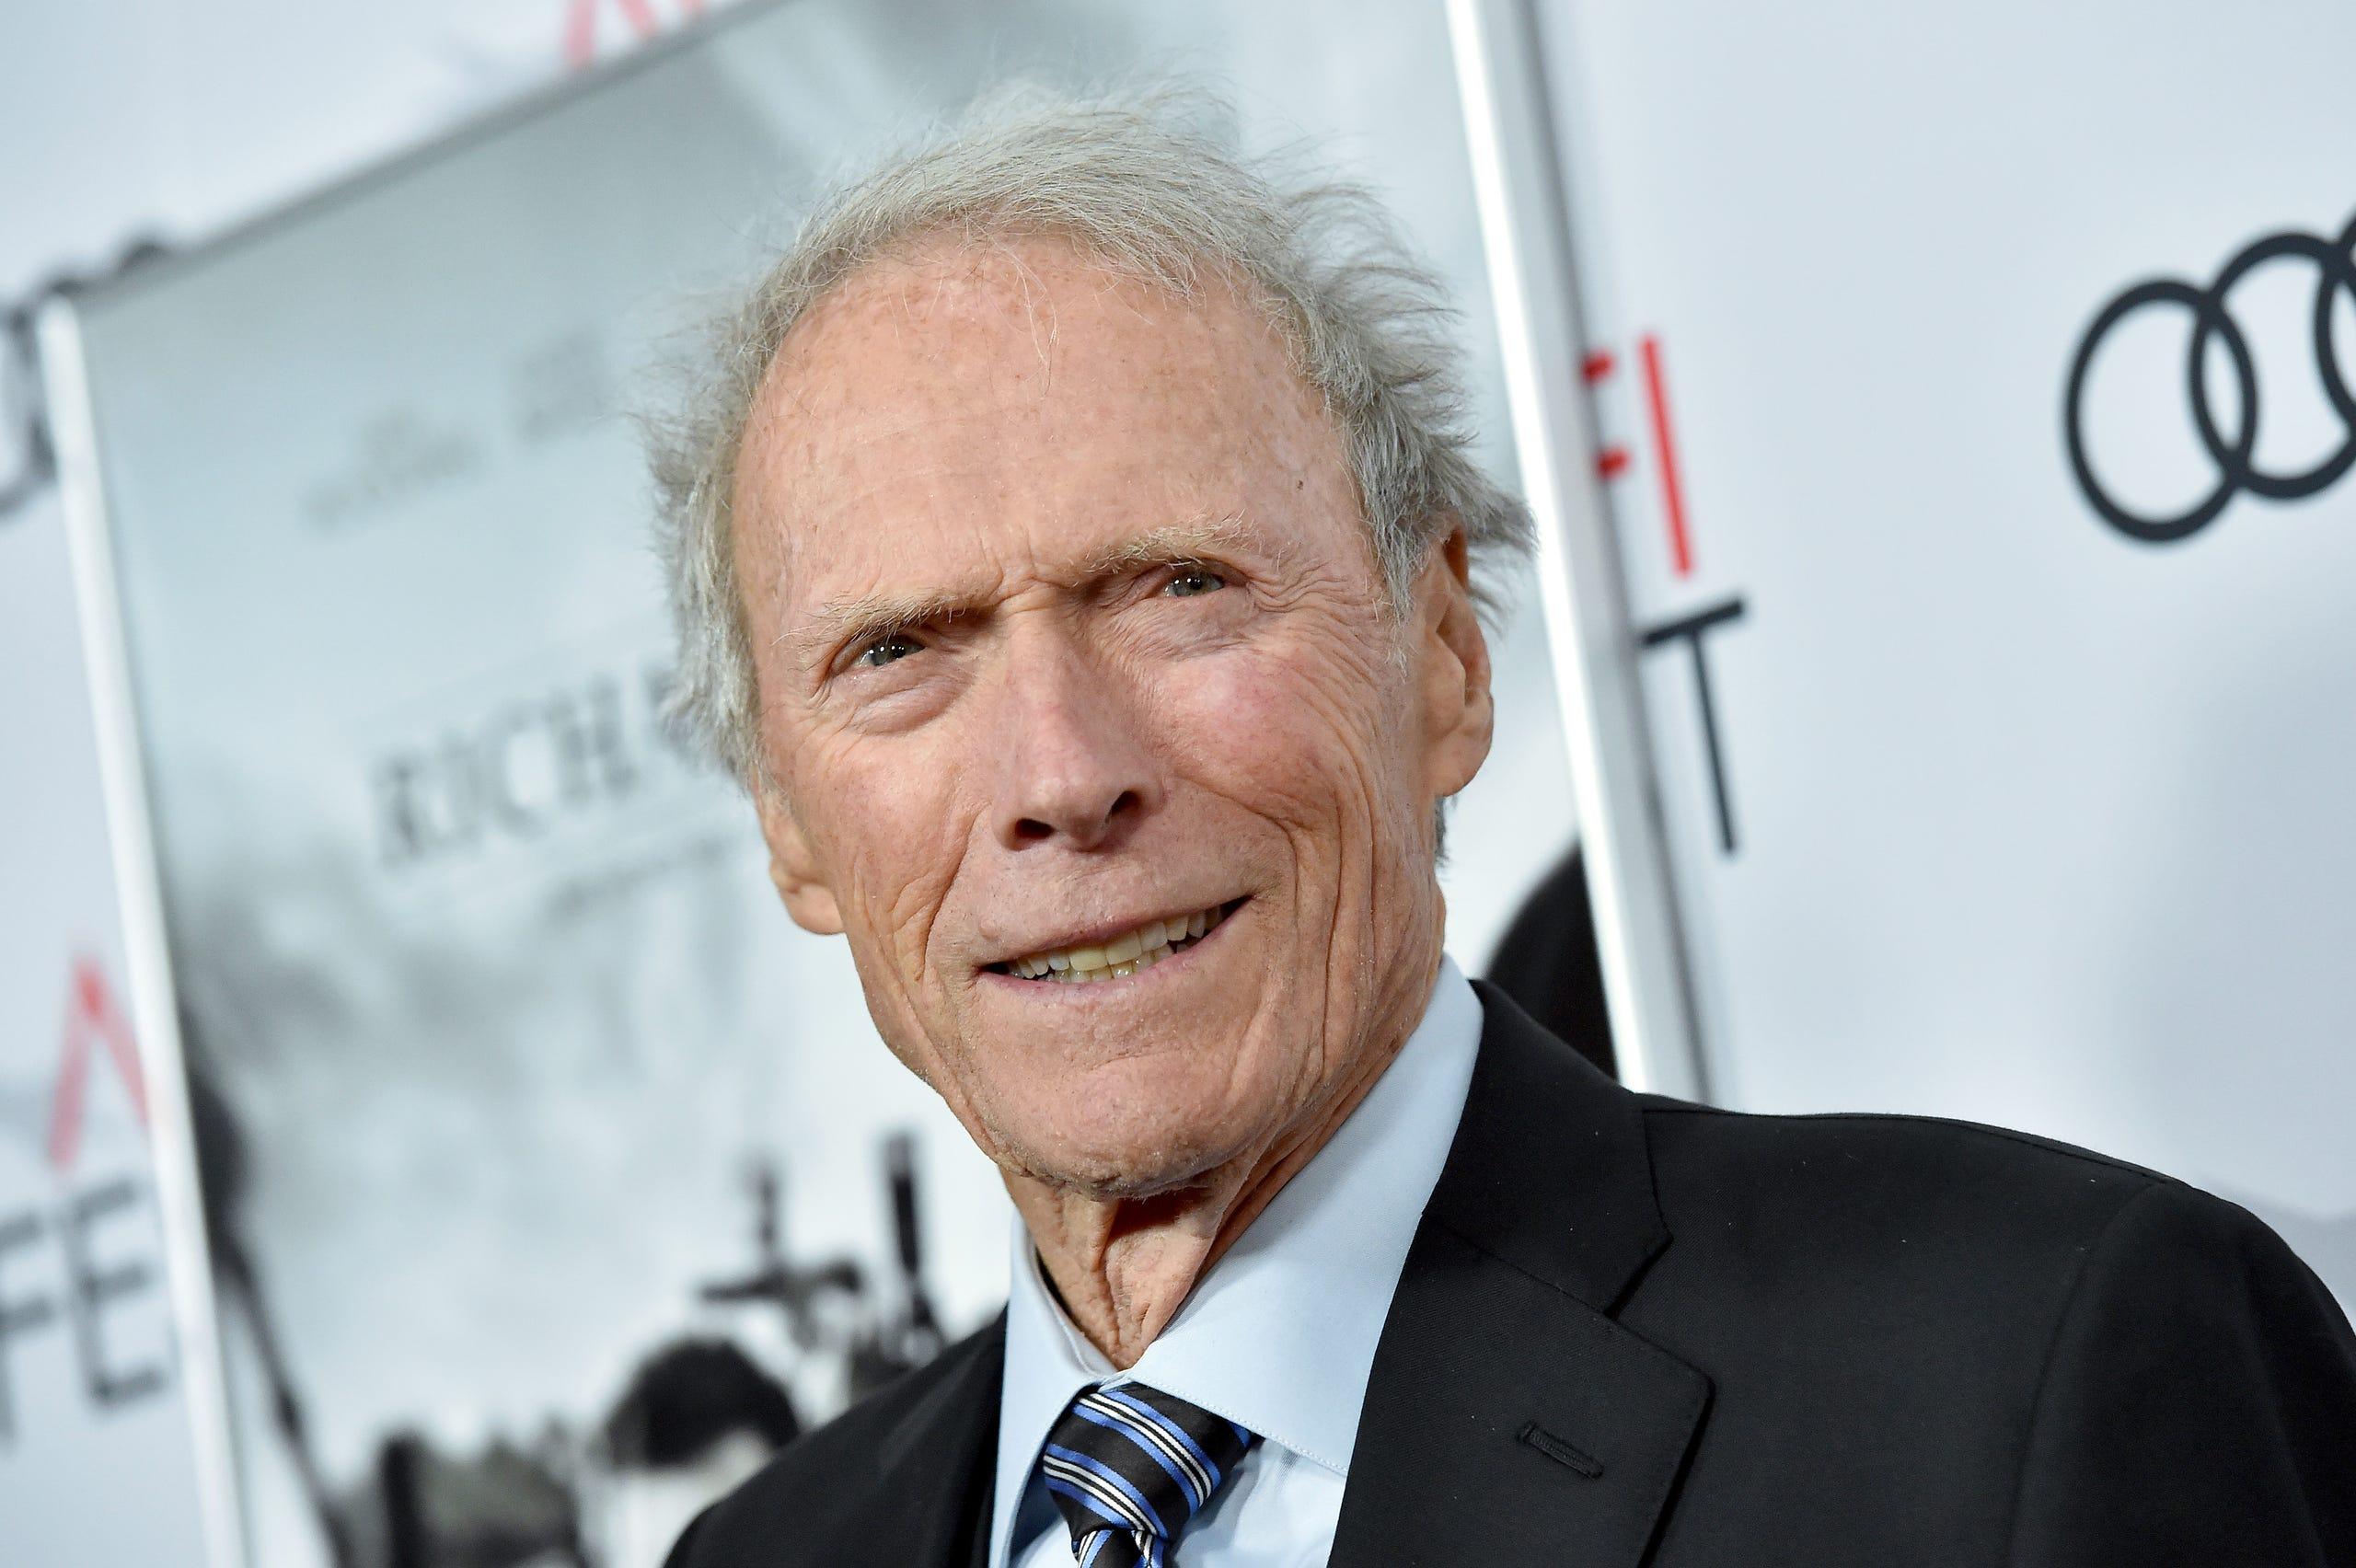 Clint Eastwood turns 90: His life and career in photos